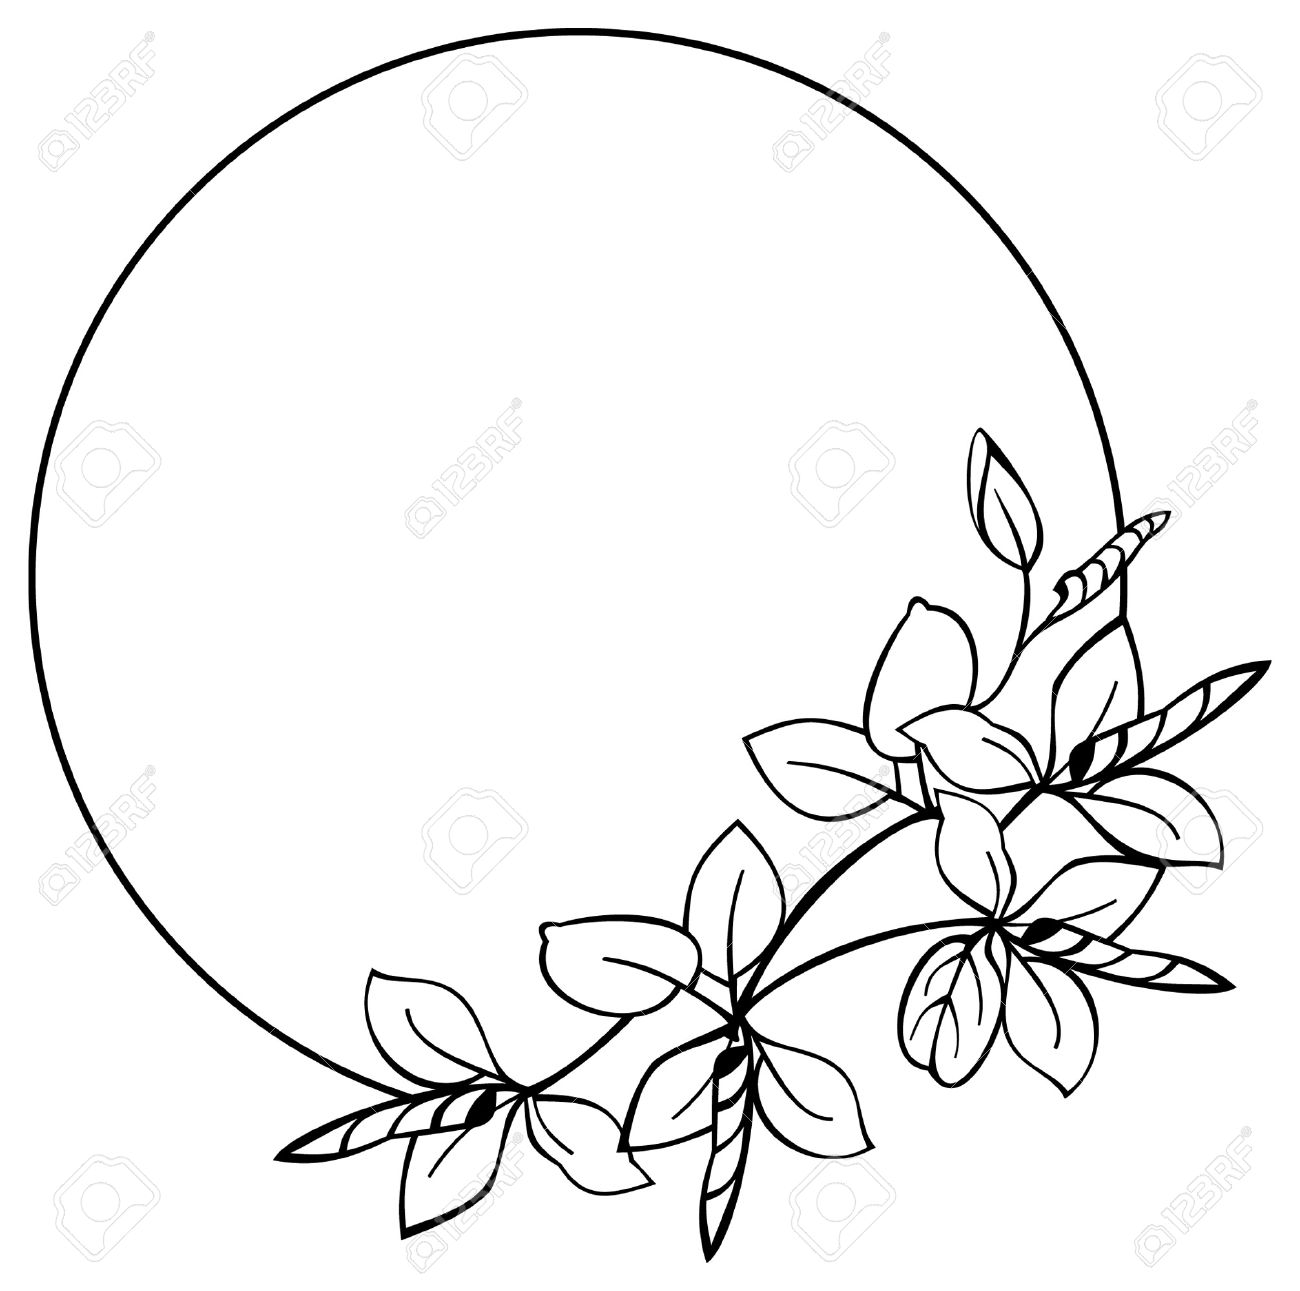 Round Flower Frame Royalty Free Cliparts, Vectors, And Stock ...